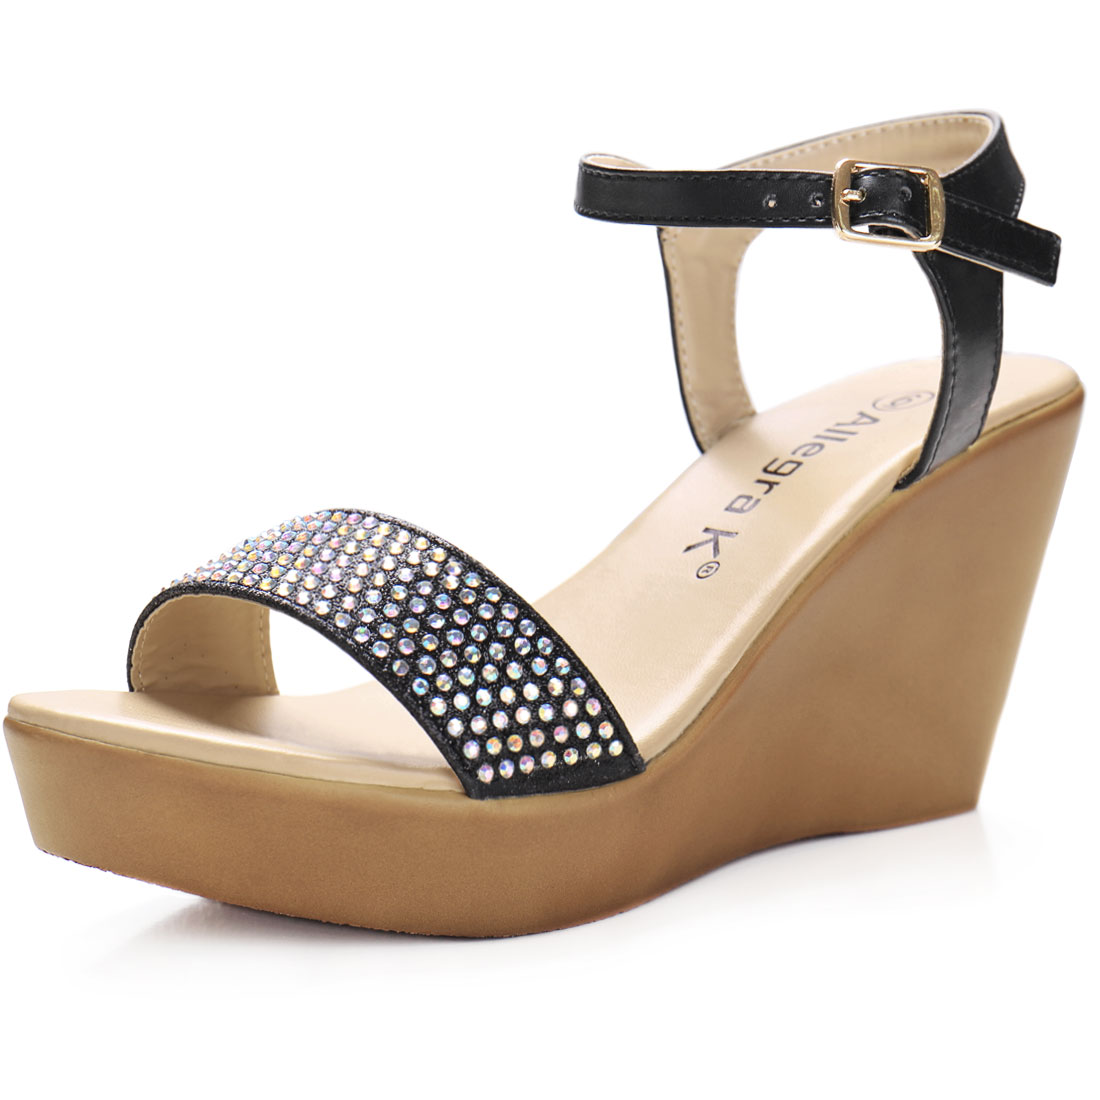 Woman Rhinestones Embellished Open Toe Wedge Sandals Black US 7